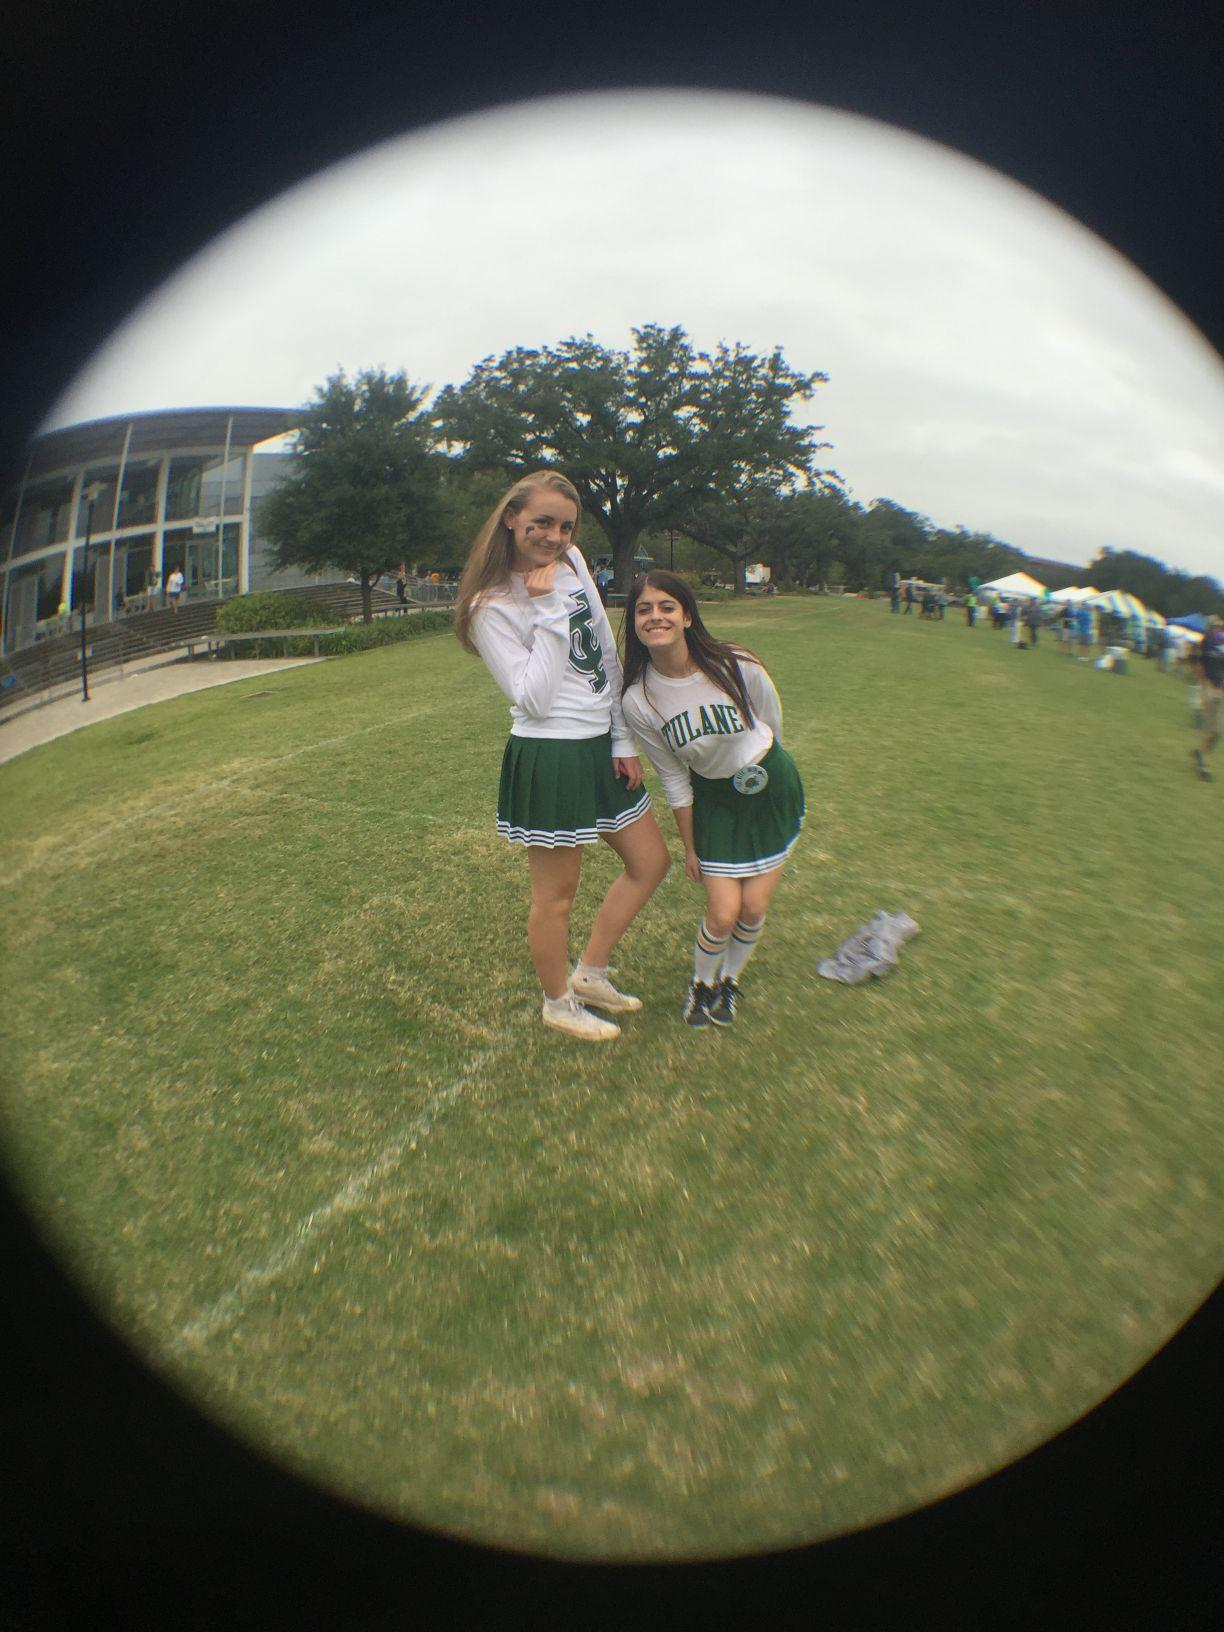 Tulane students sophomore Hannah Myers and sophomore Lauren Breitstone dress in Tulane cheerleading skirts for Houston tailgate Oct. 17.